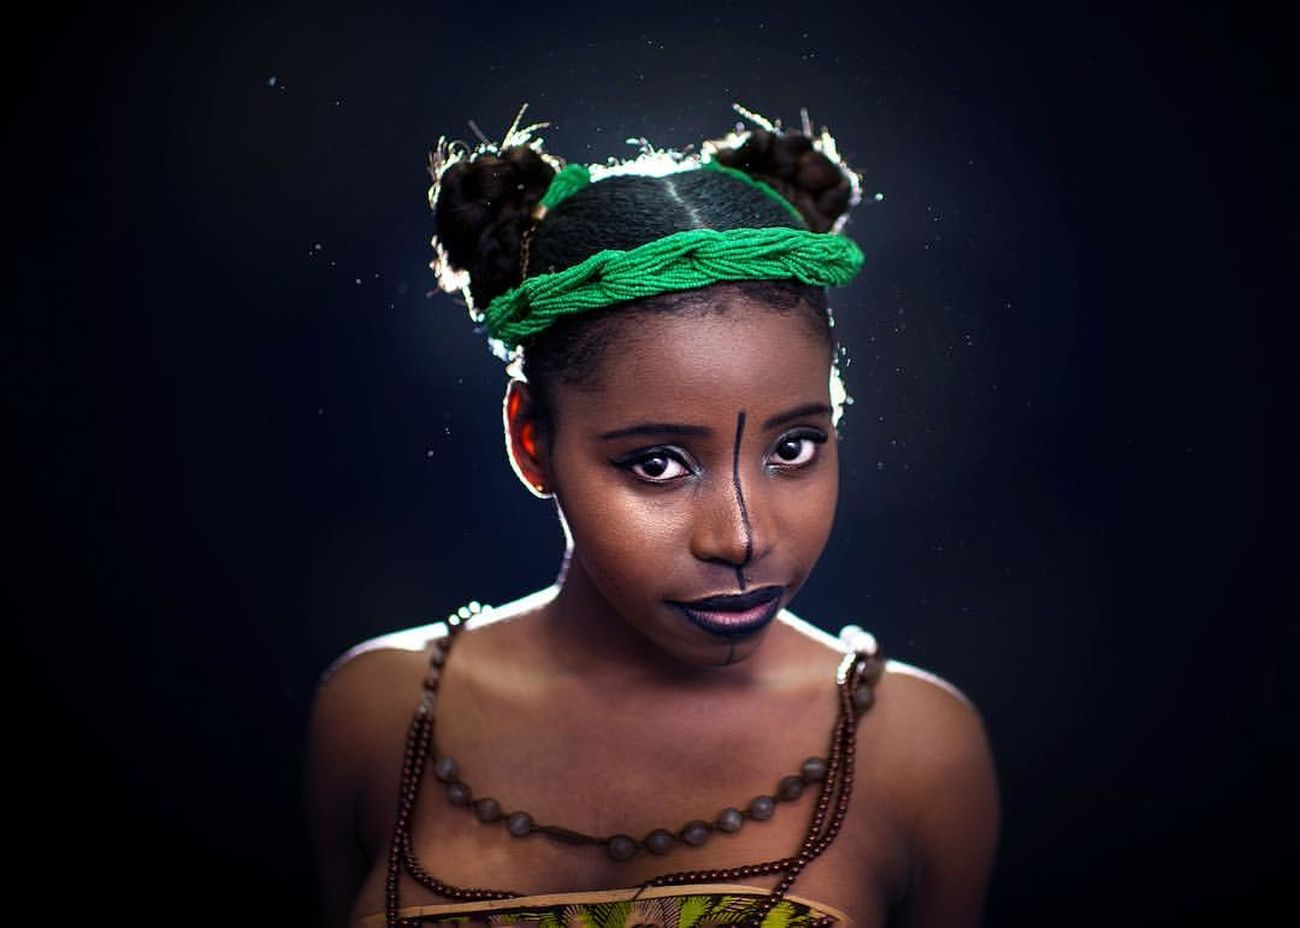 Cute little makoli in her African clothes. Studio portrait.